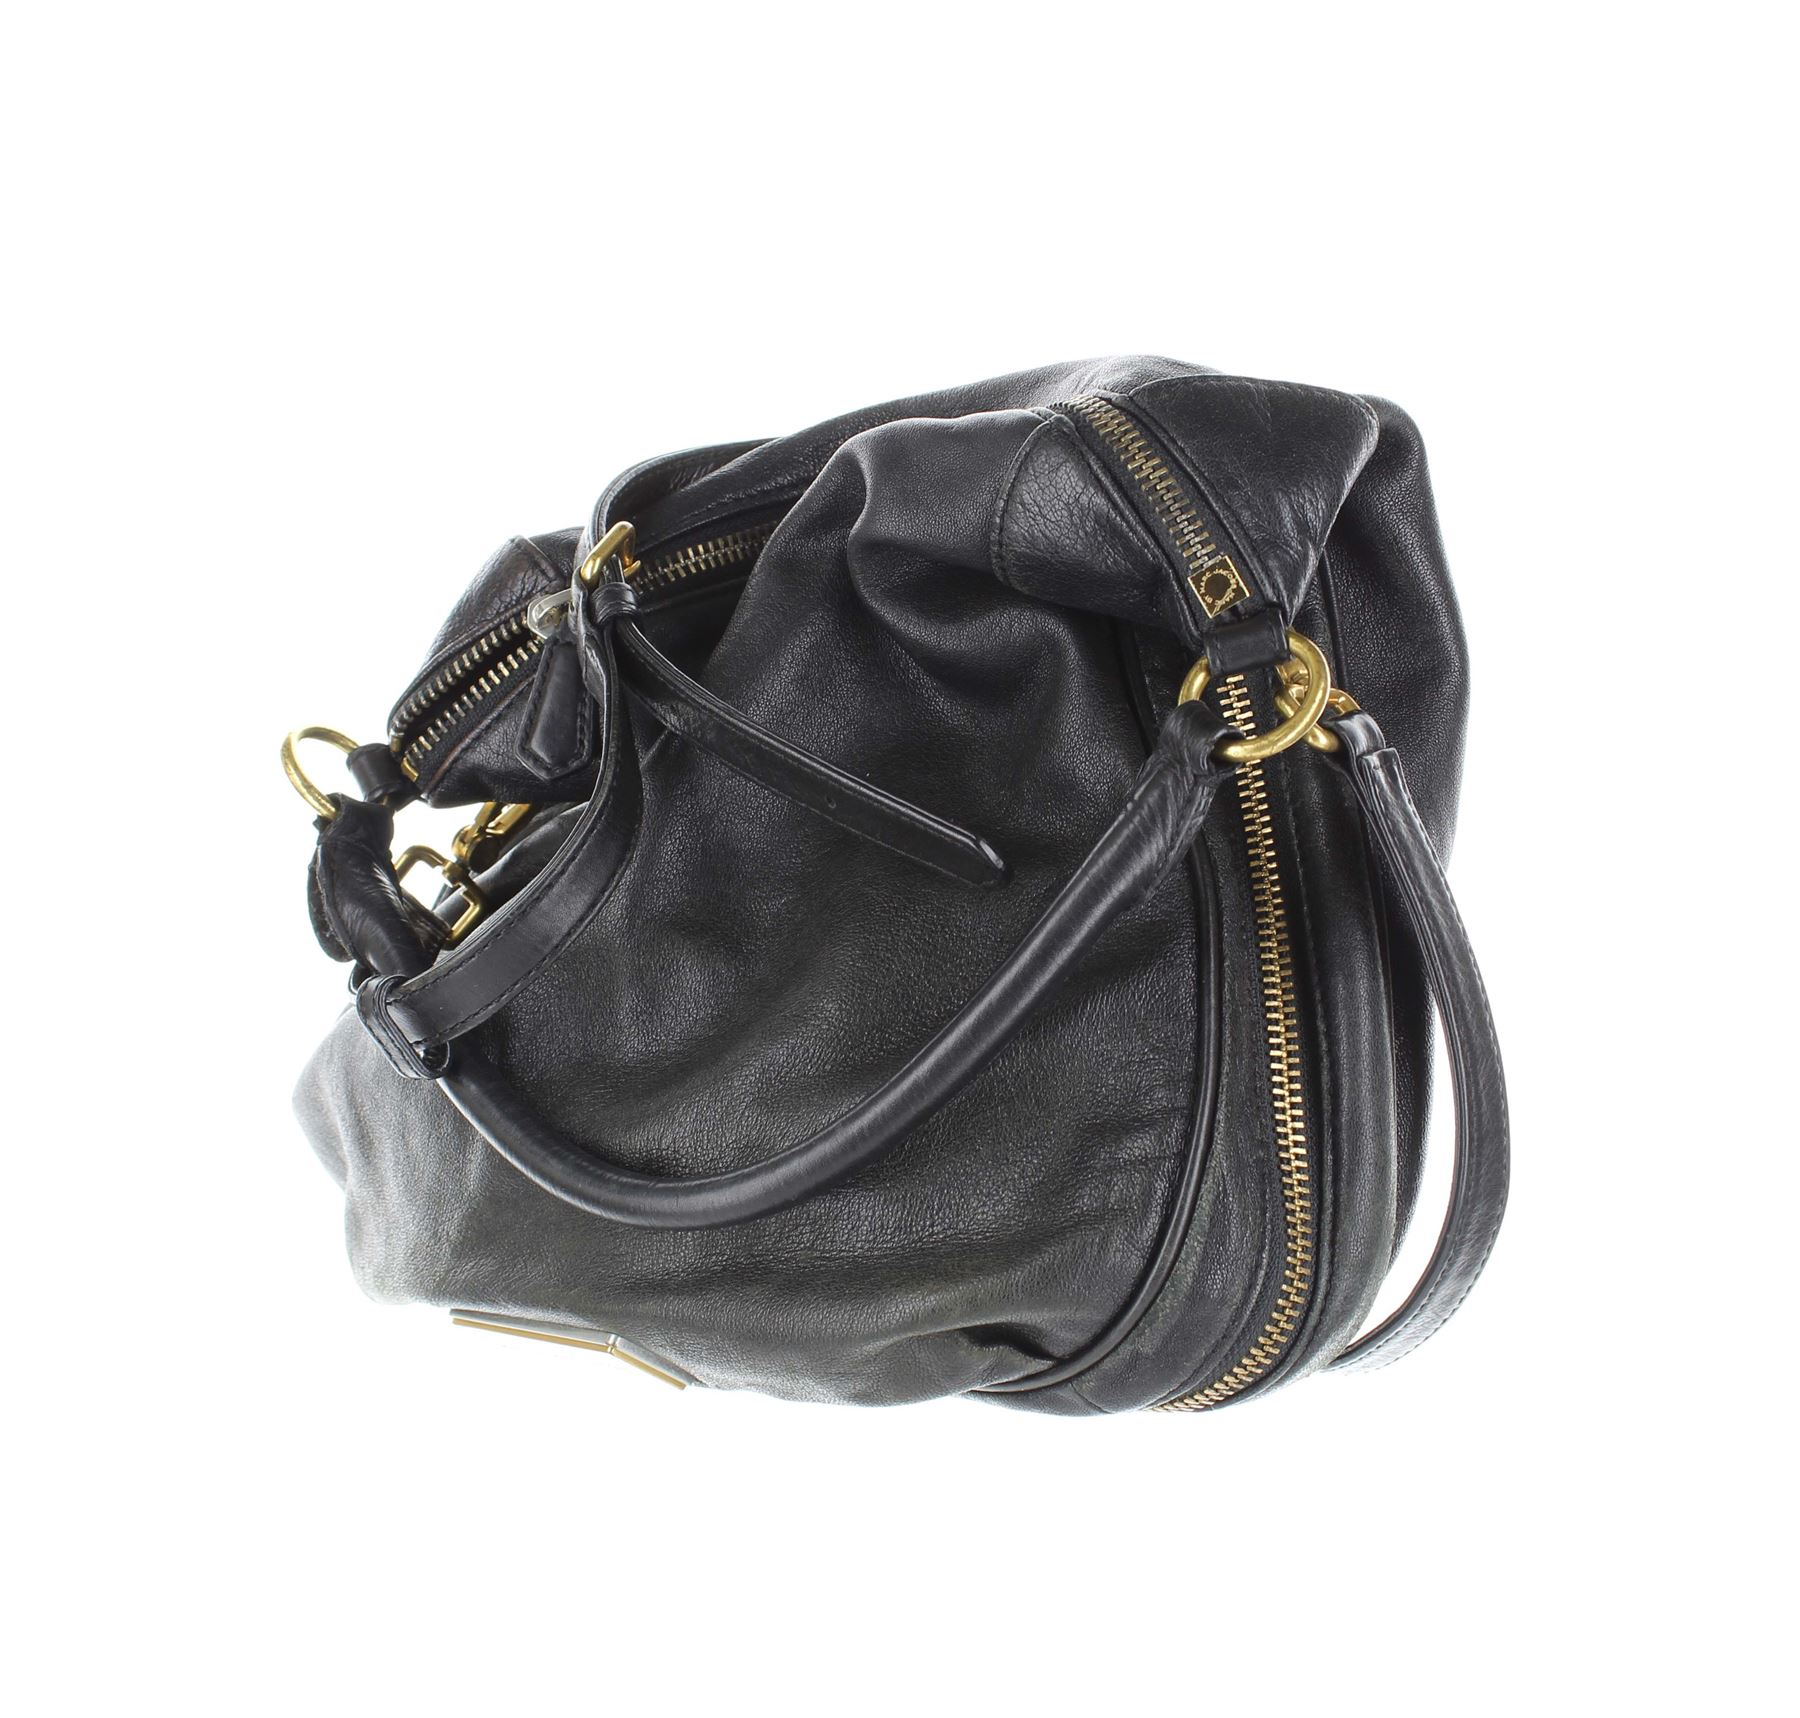 a1eec06830 MARC BY MARC JACOBS Borsa a tracolla in pelle nera, 13